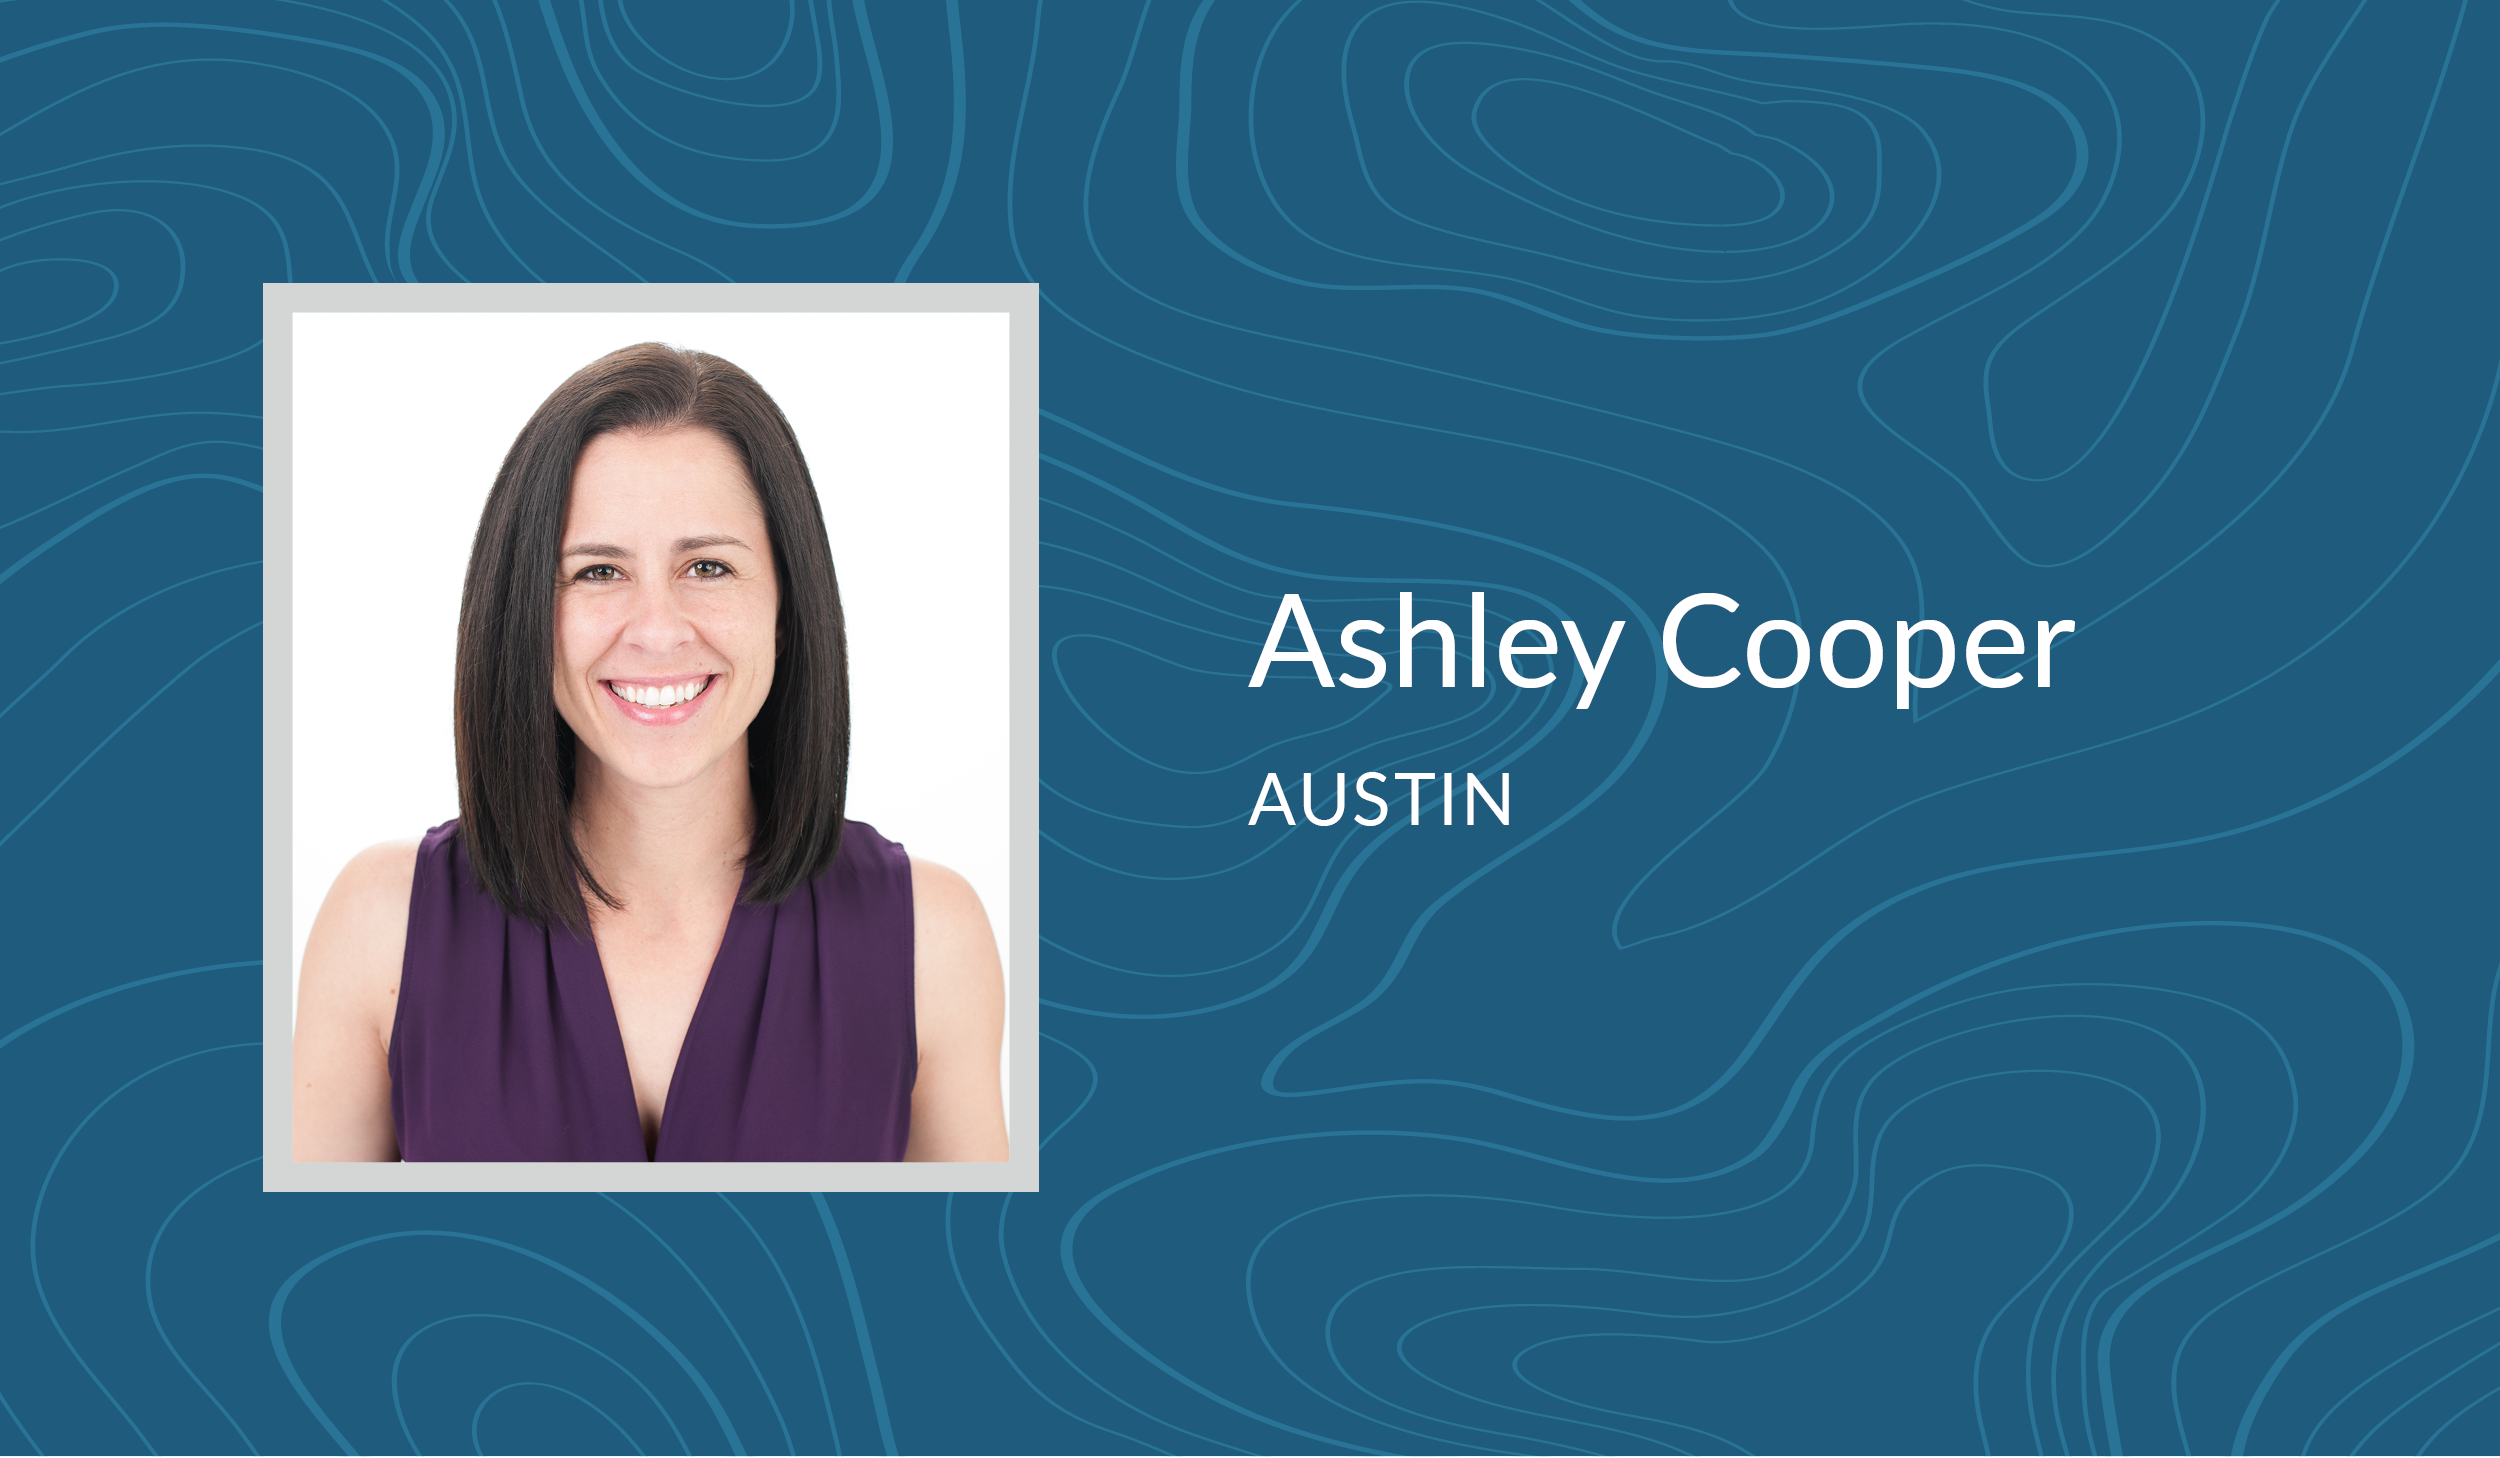 Ashley Cooper Landing Page Headers.png